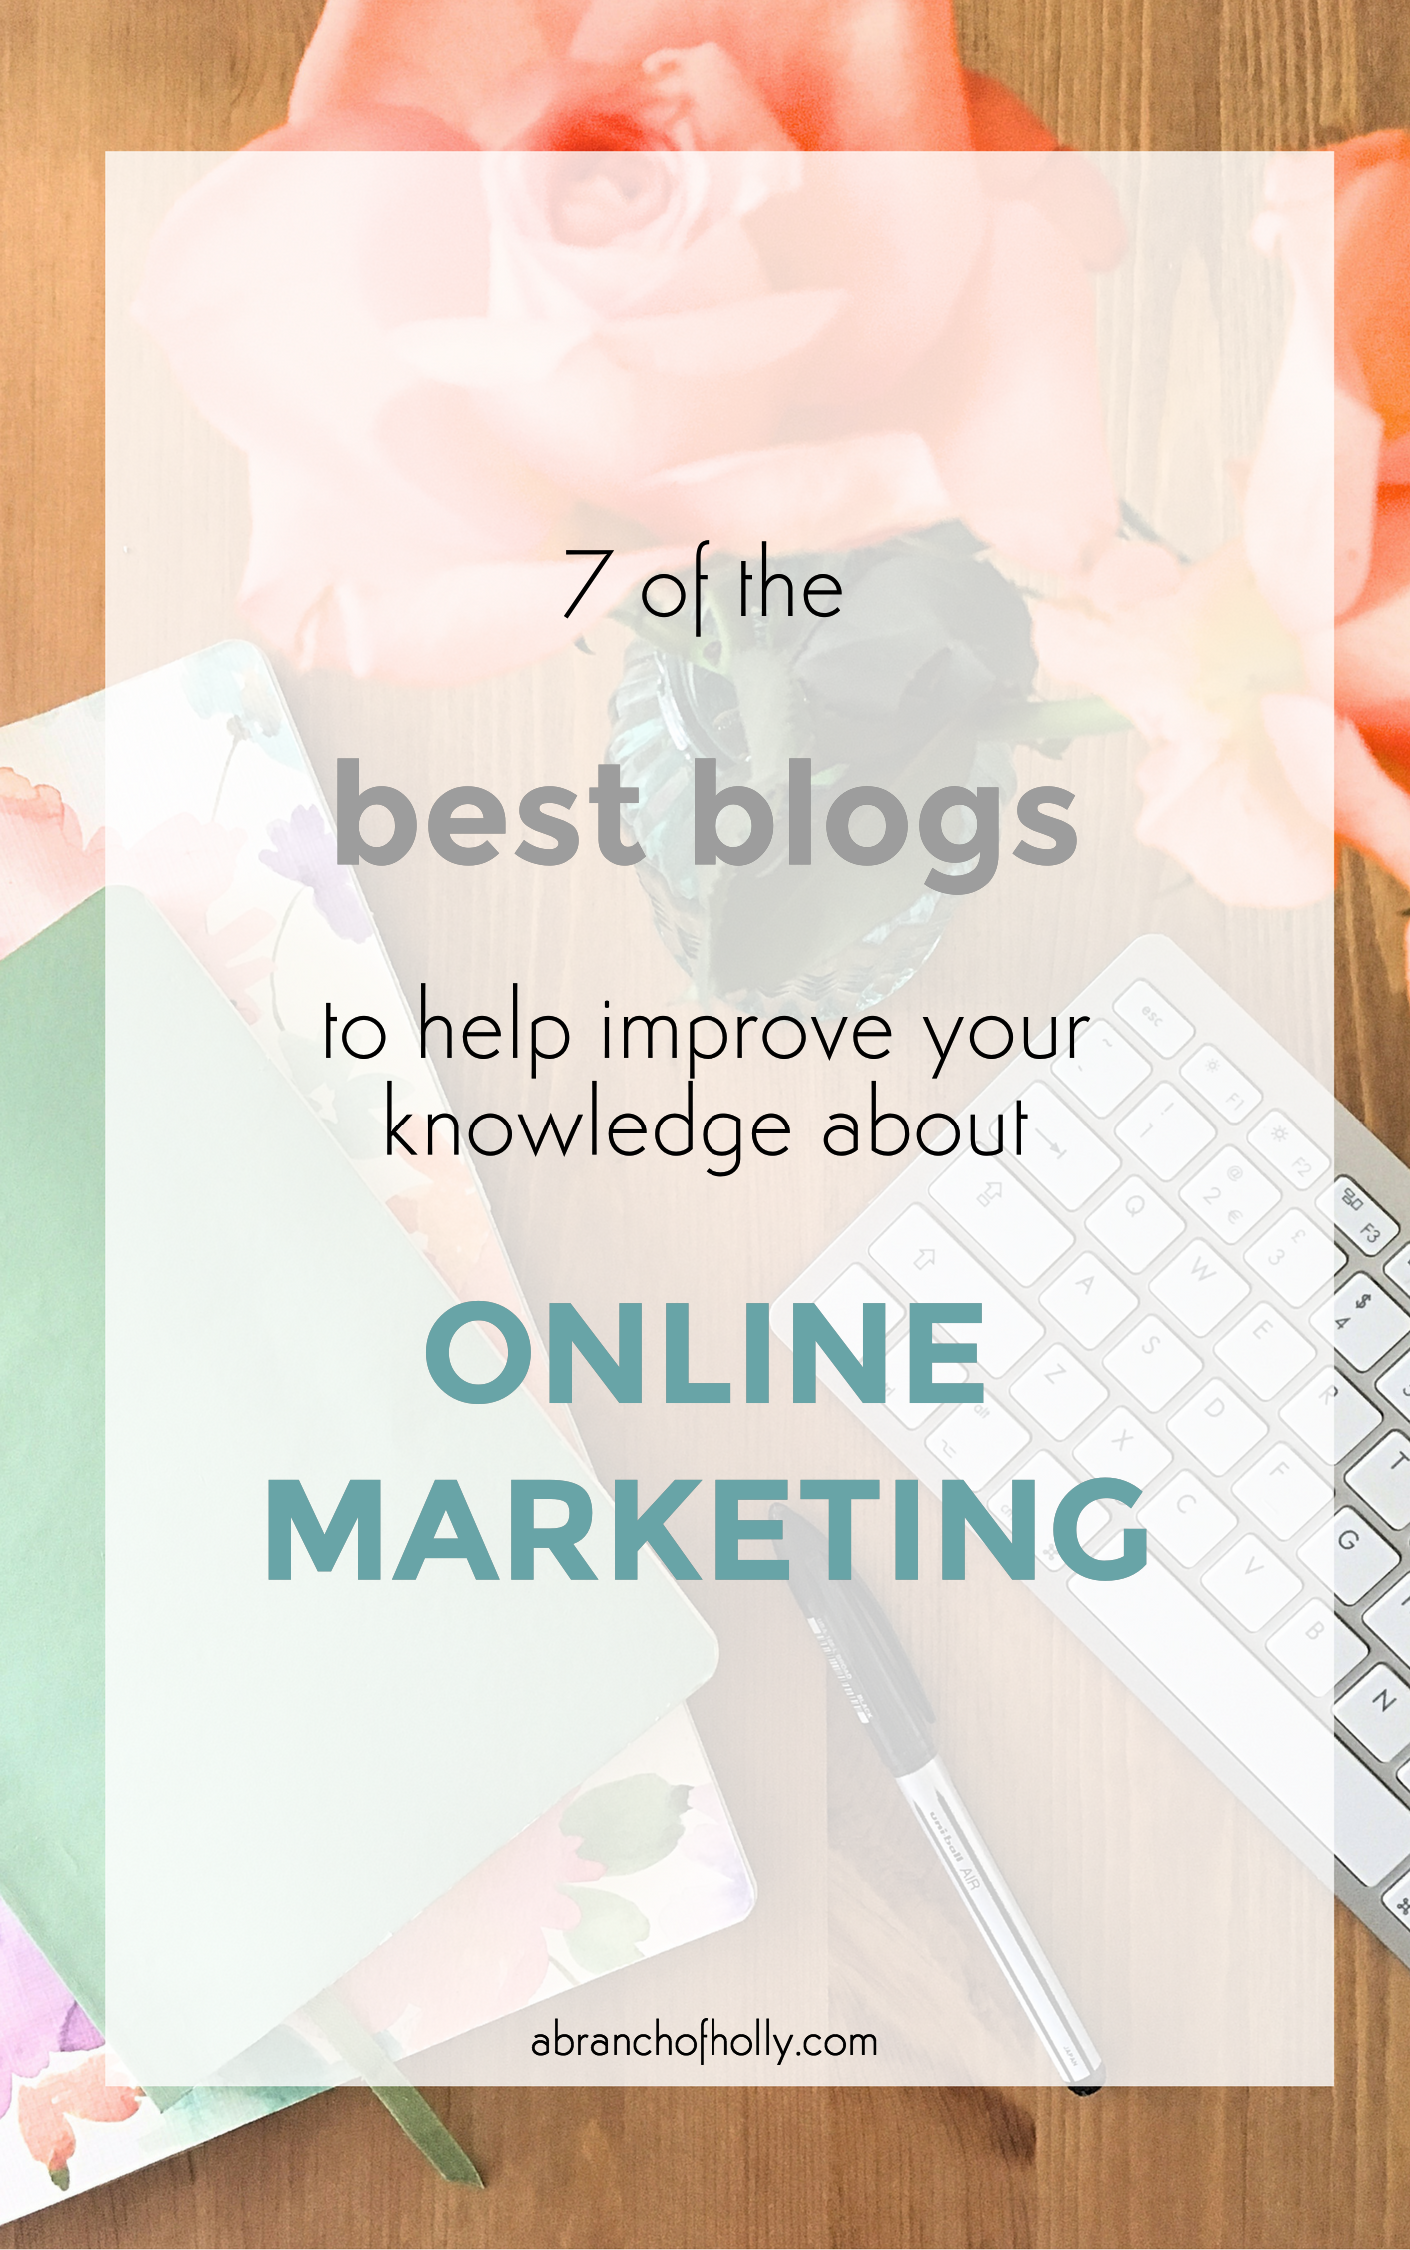 blogs to improve your knowledge about online marketing